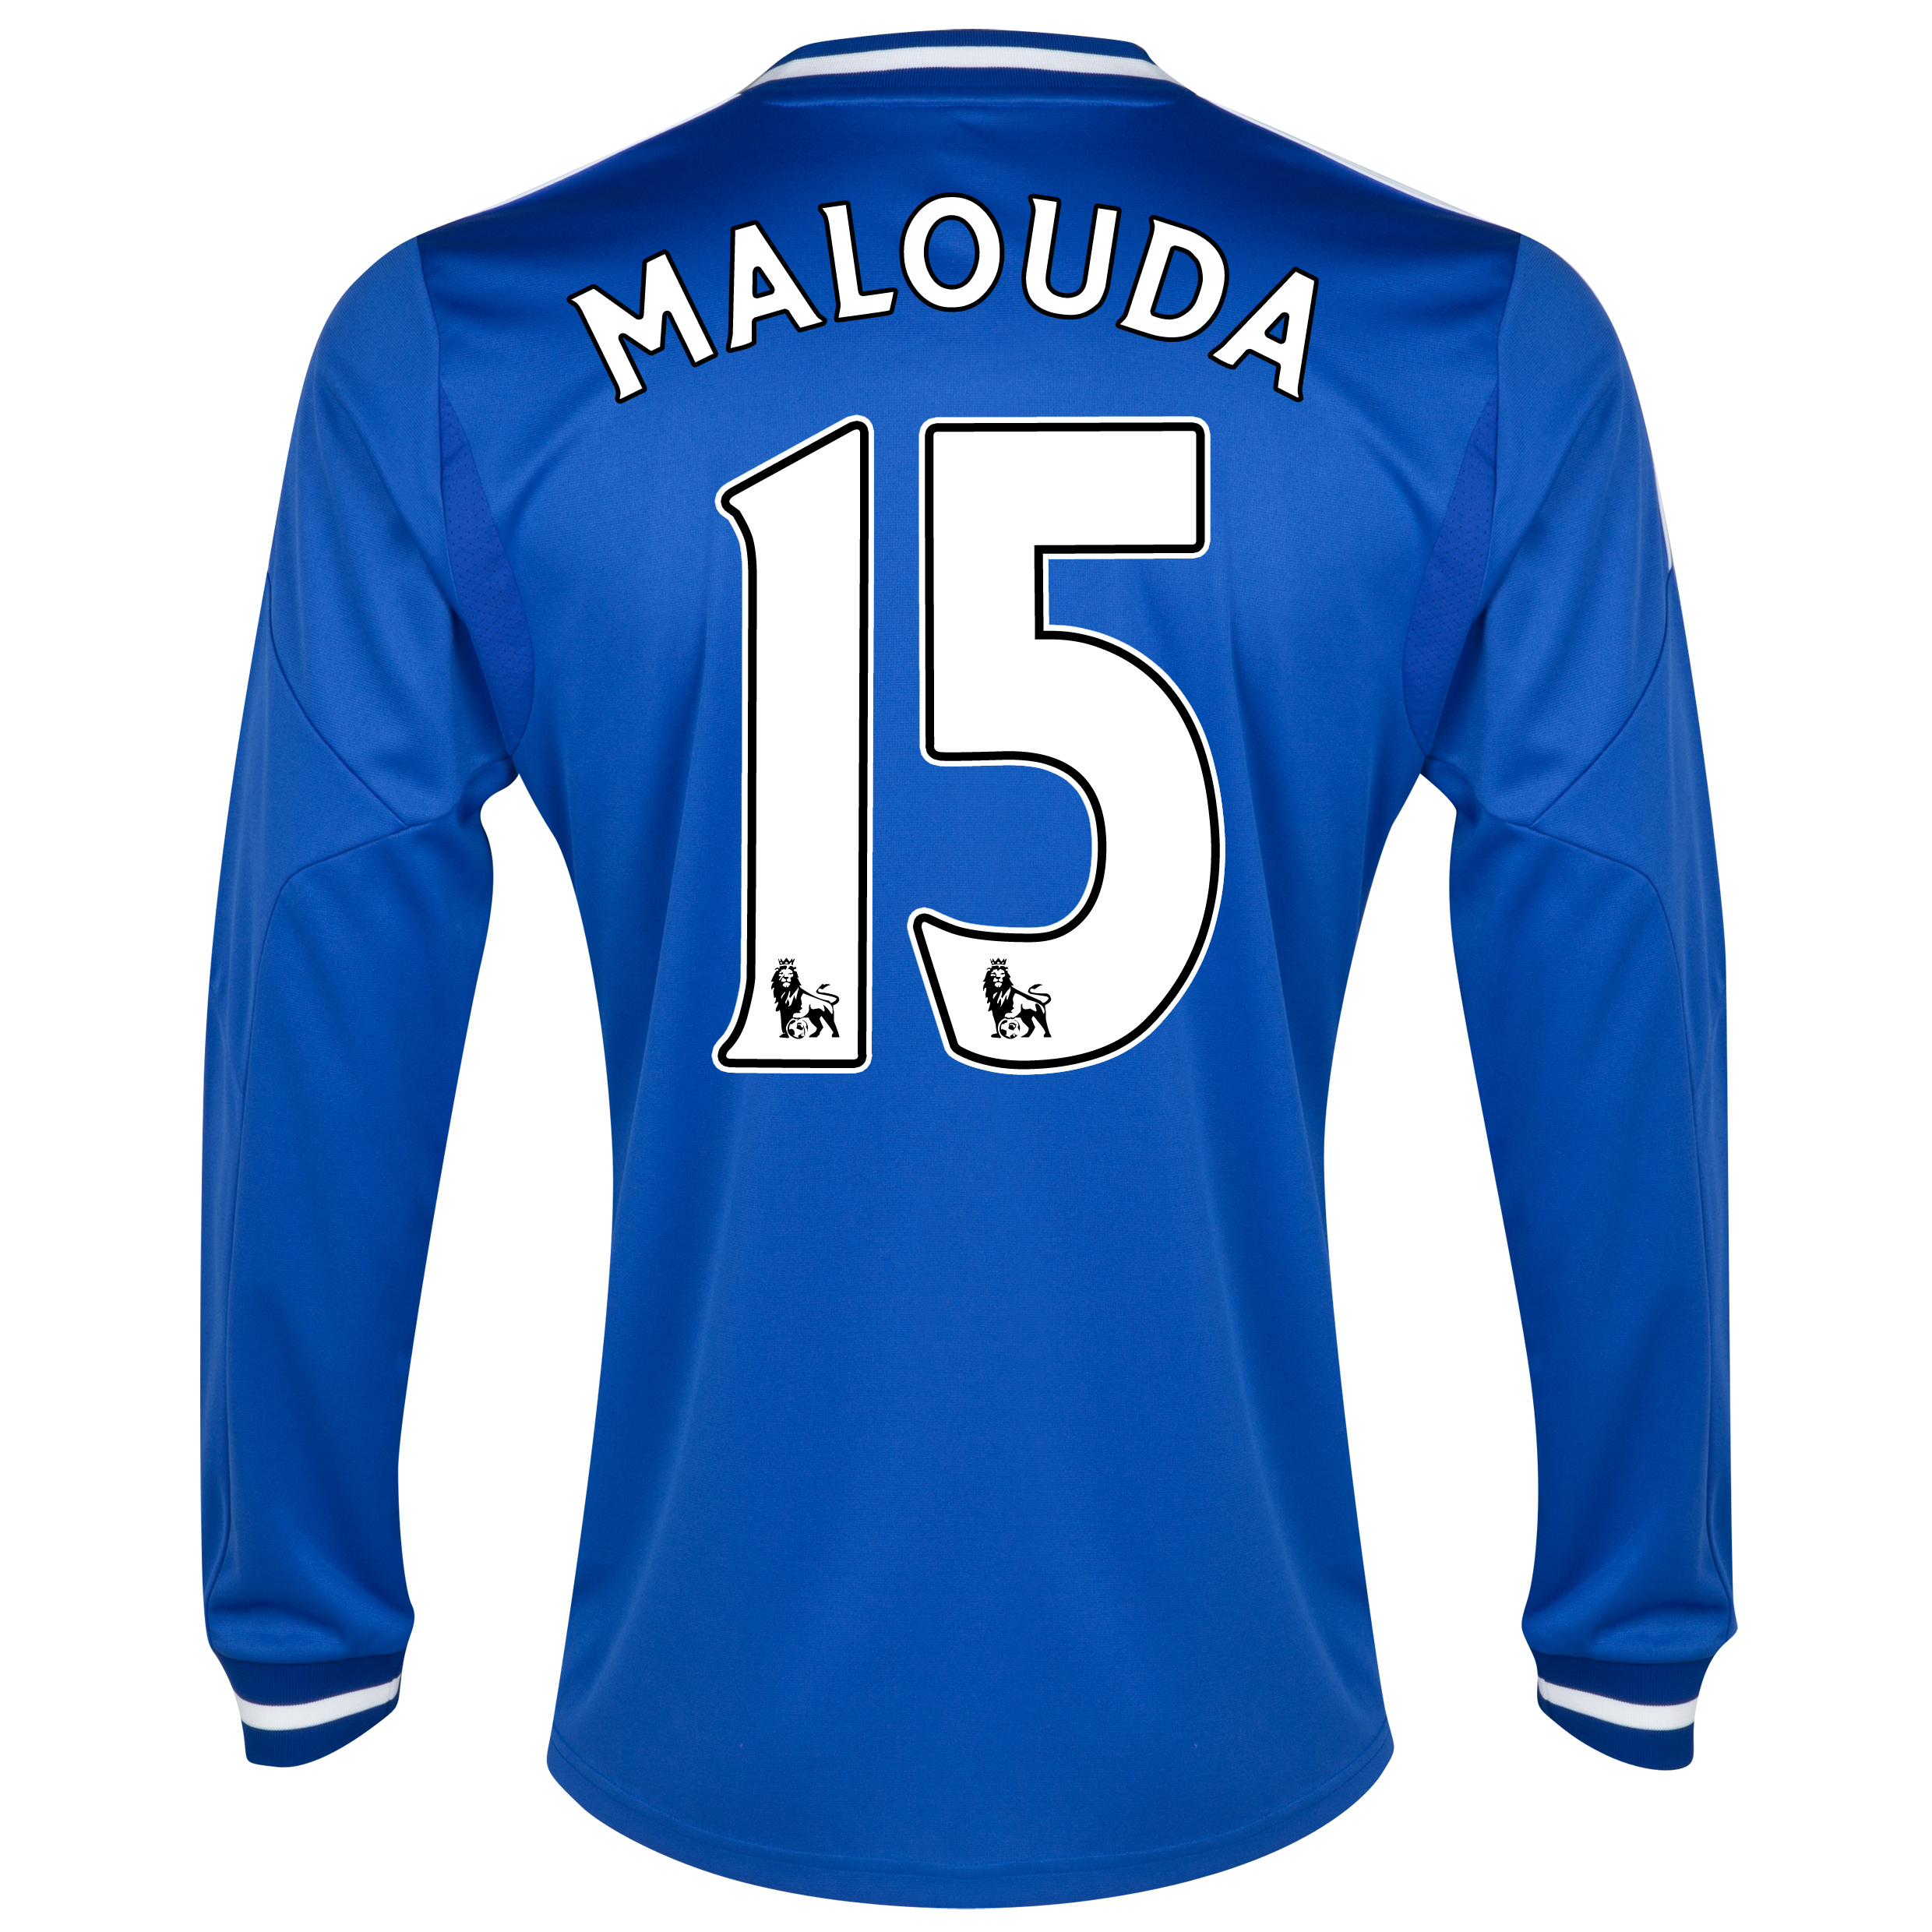 Chelsea Home Shirt 2013/14 - Long Sleeve with Malouda 15 printing